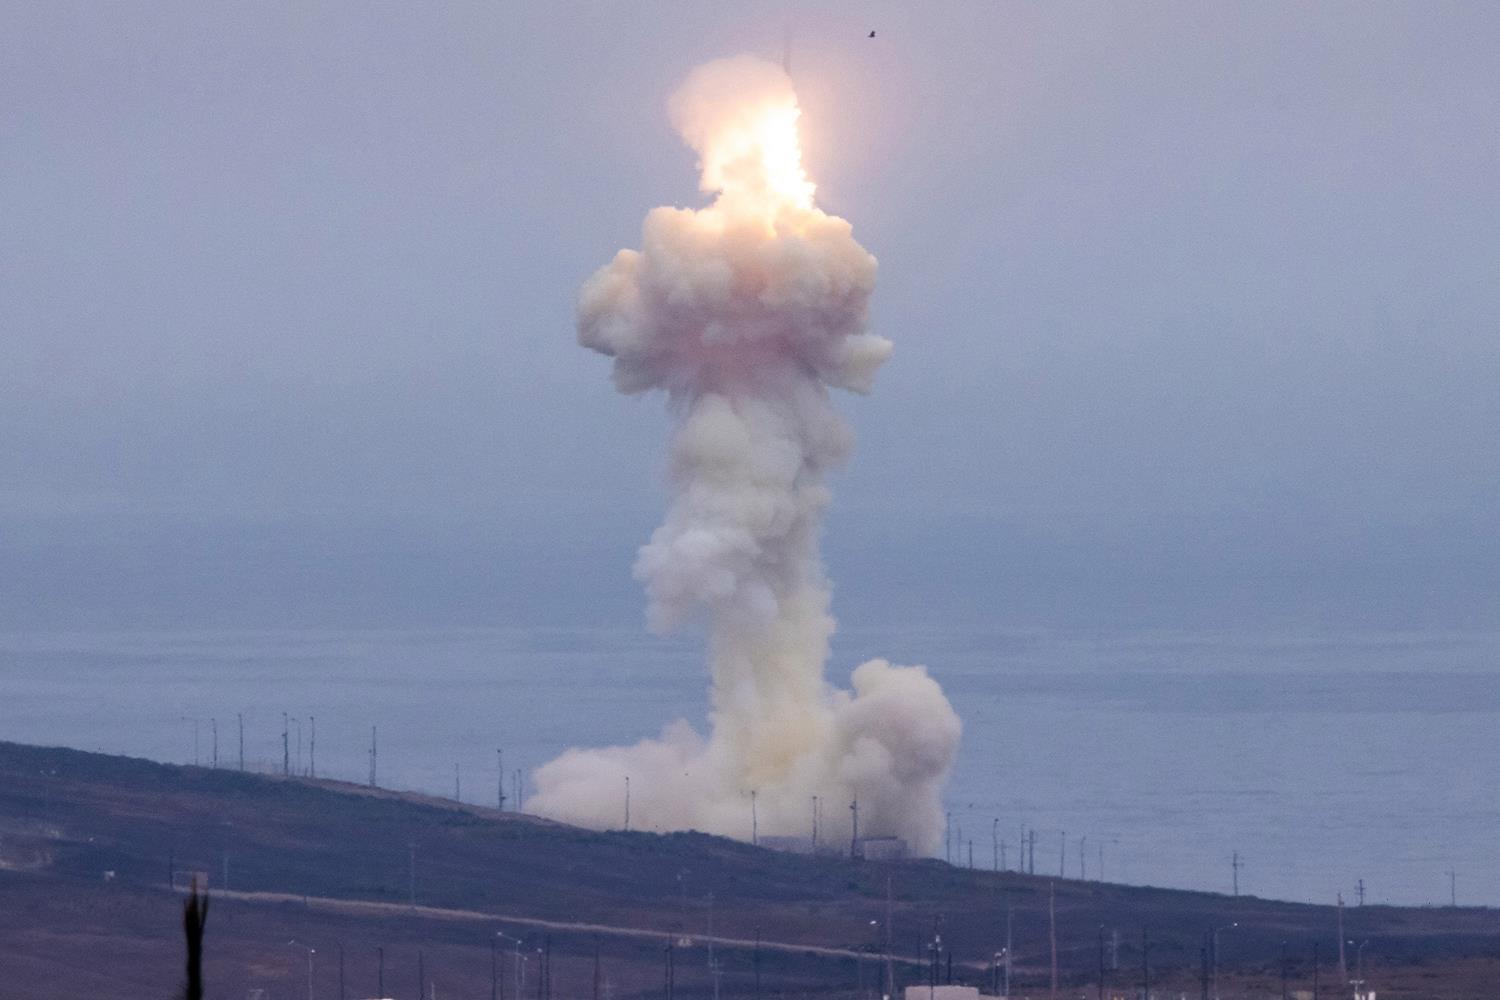 US conducts interceptor missile test with launch at Vandenberg Space Force Base as part of long-range attack defense